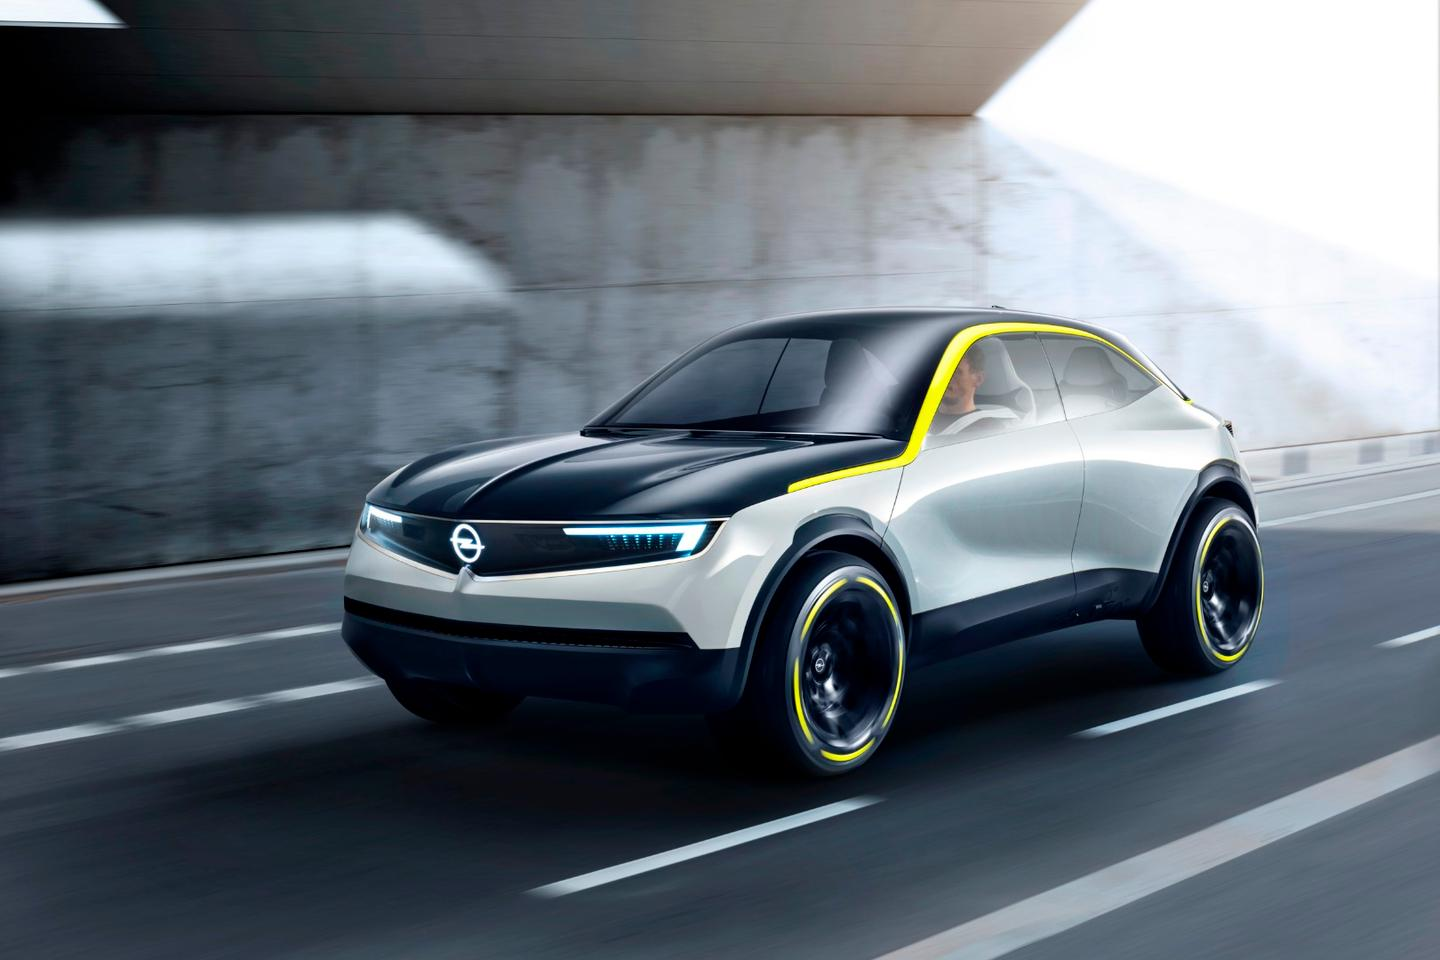 Opel GT X Experimental concept: envisageselectric motoring in the mid-2020s